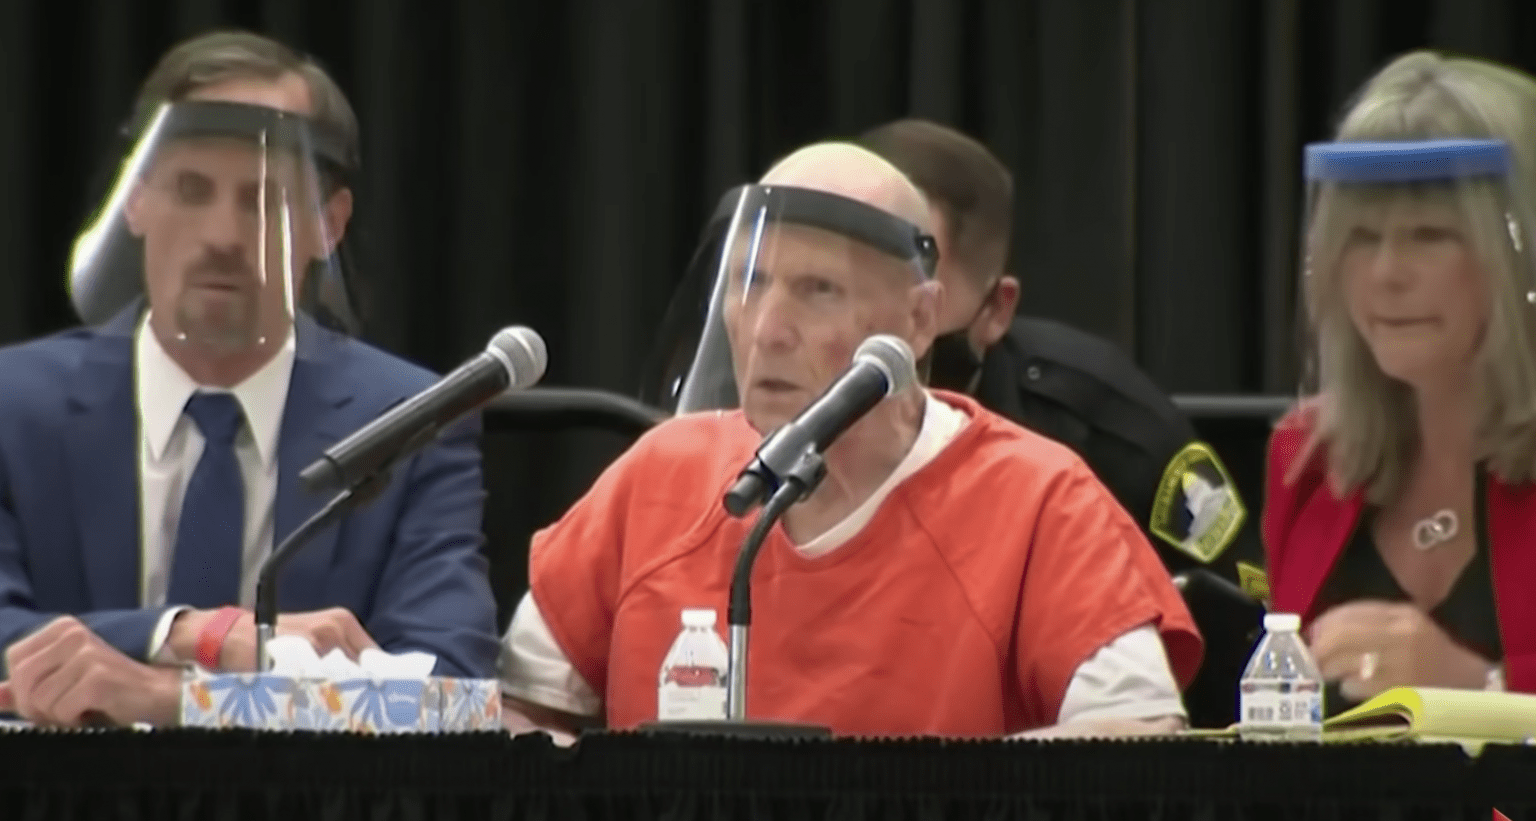 He's pleading guilty to more than a dozen murders, rapes, break-ins and more. 'Real life version of Hannibal Lecter.'